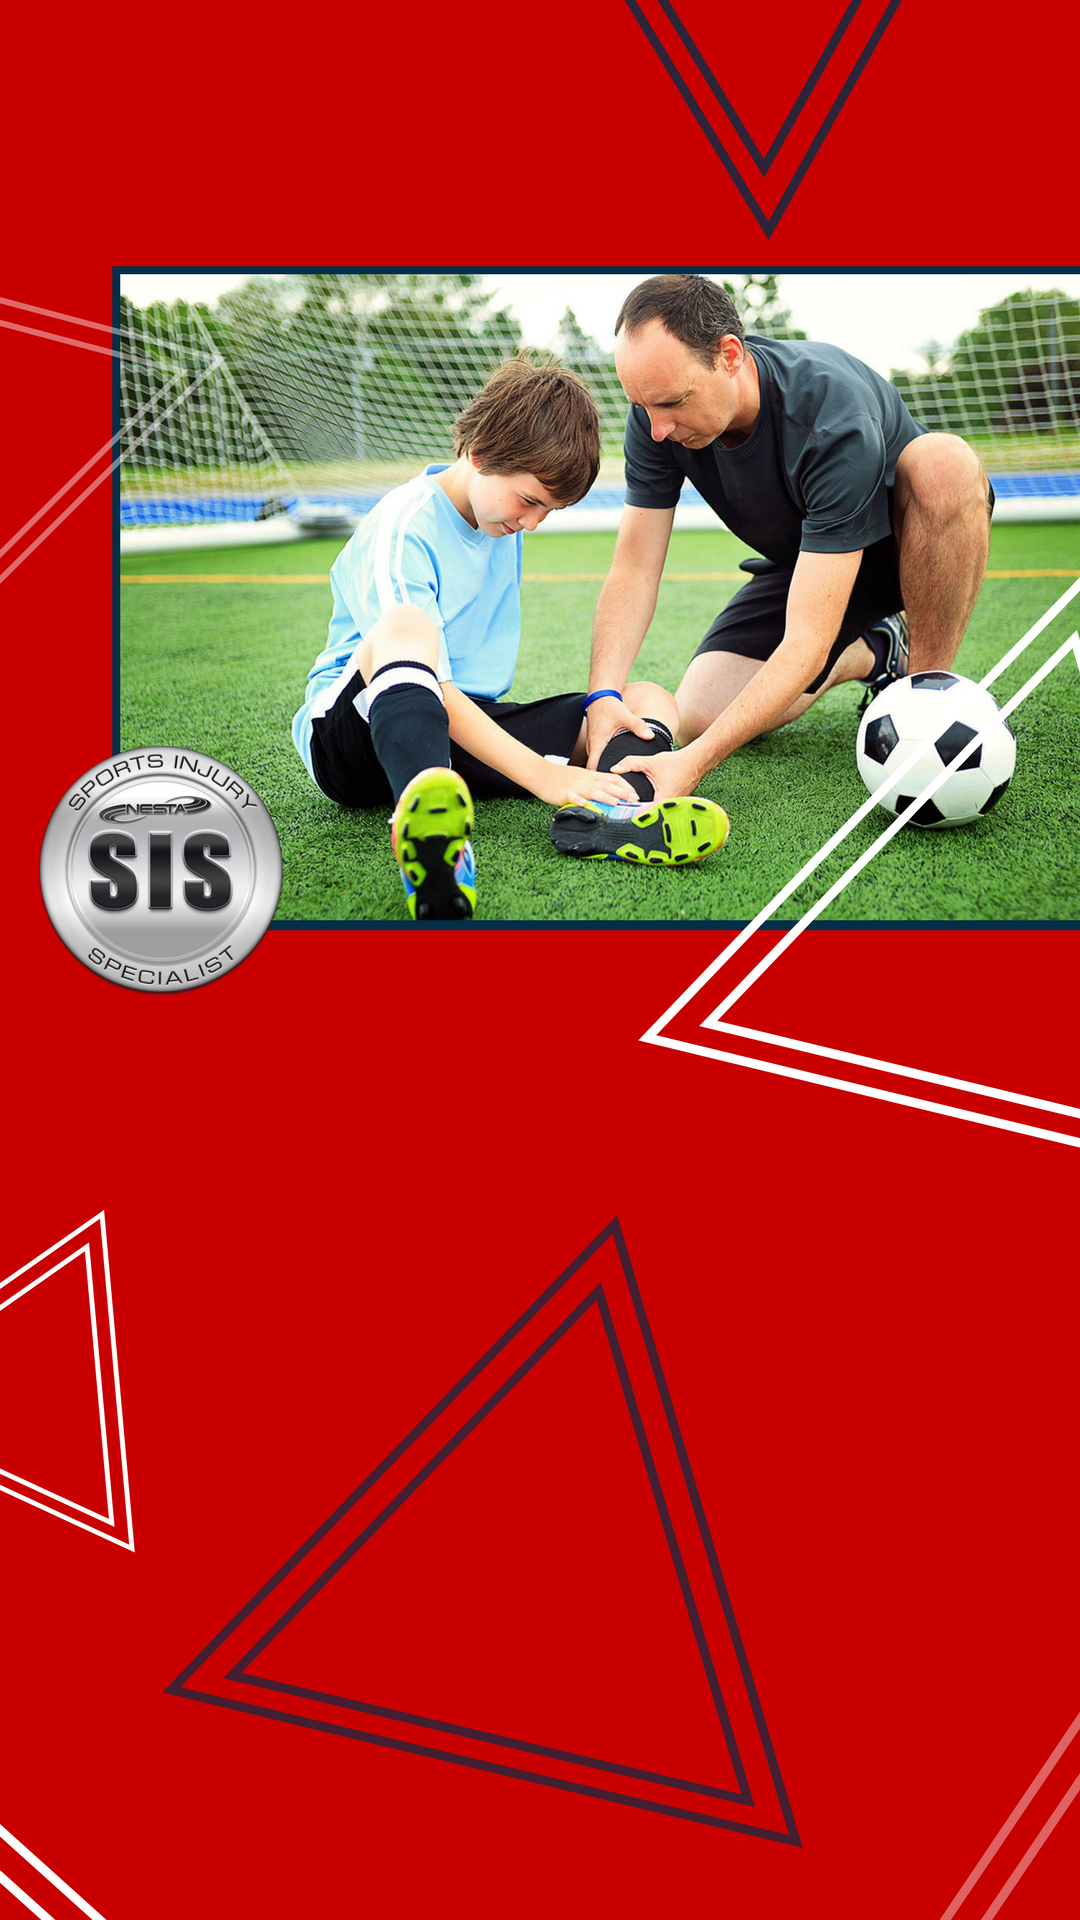 Sport Injury Specialist Course Sports, Career training